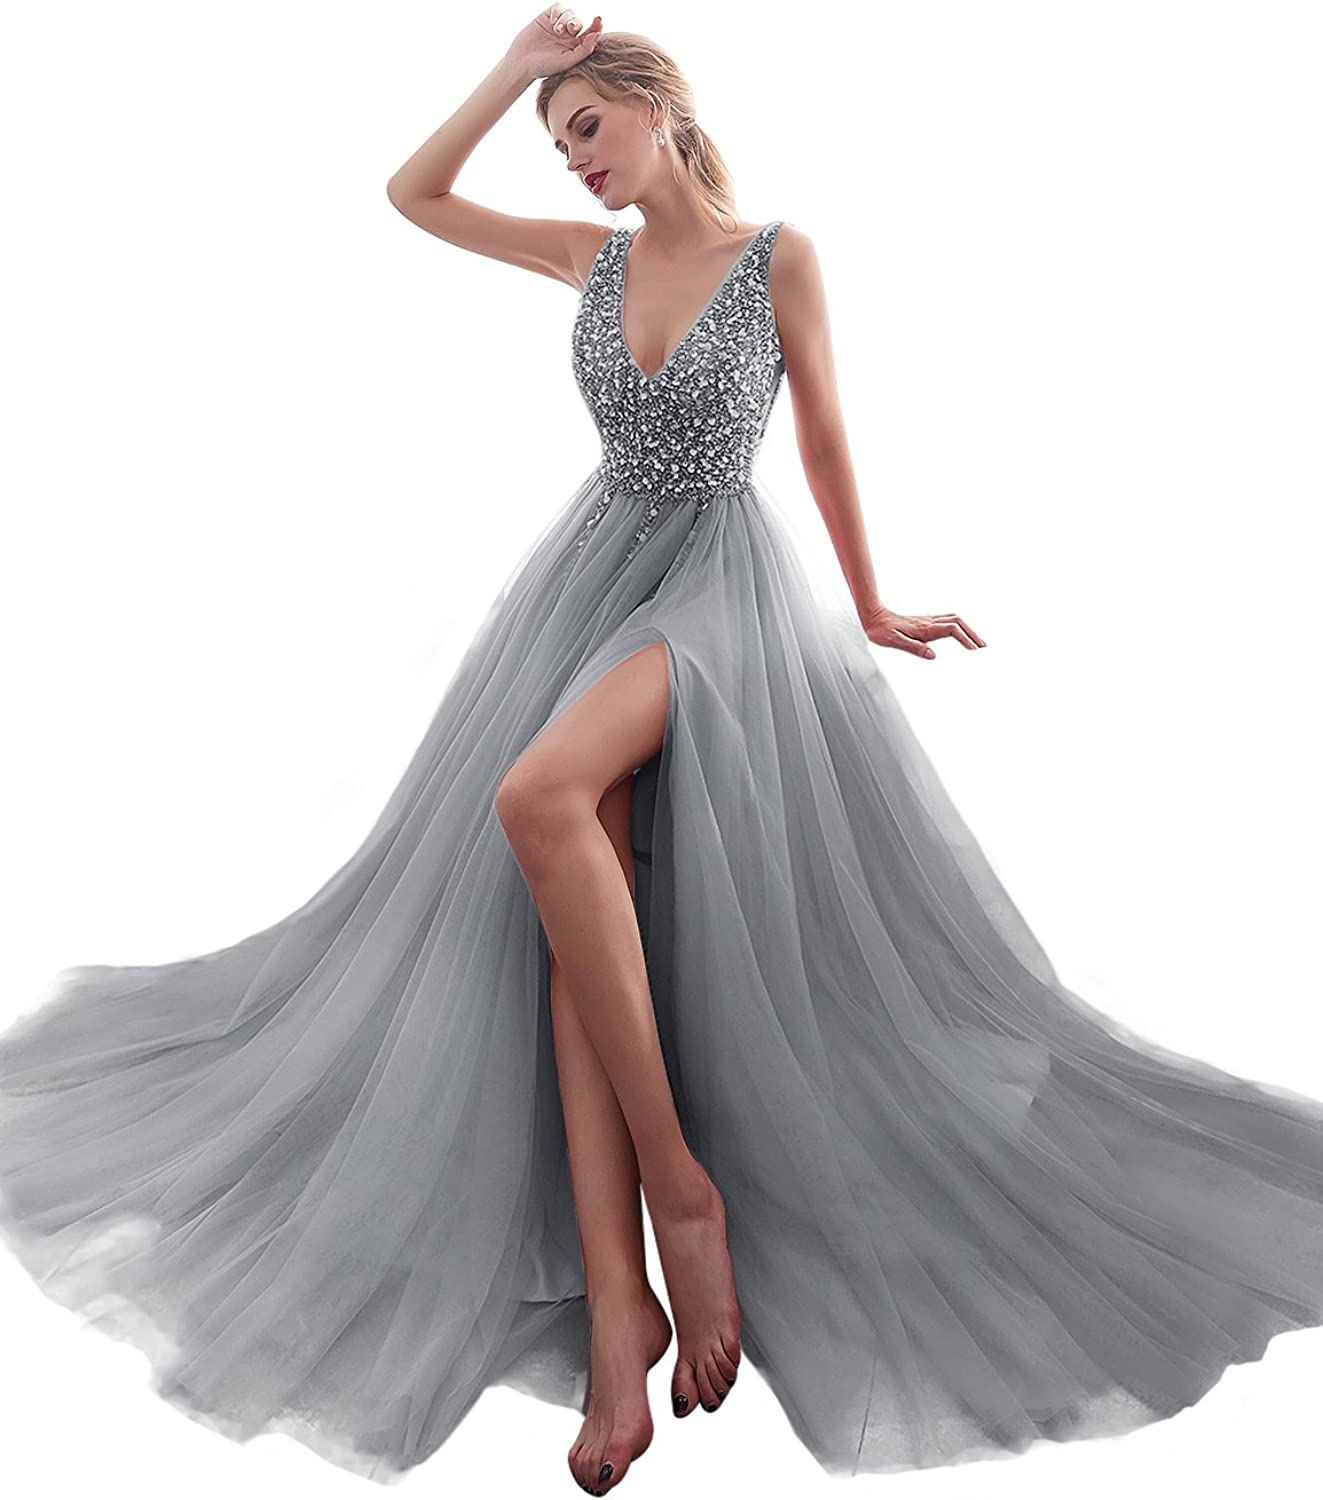 Dreambridal Women's Sexy Deep V Neck Tulle Maxi Long Evening Prom Bridesmaid Dresses ON001